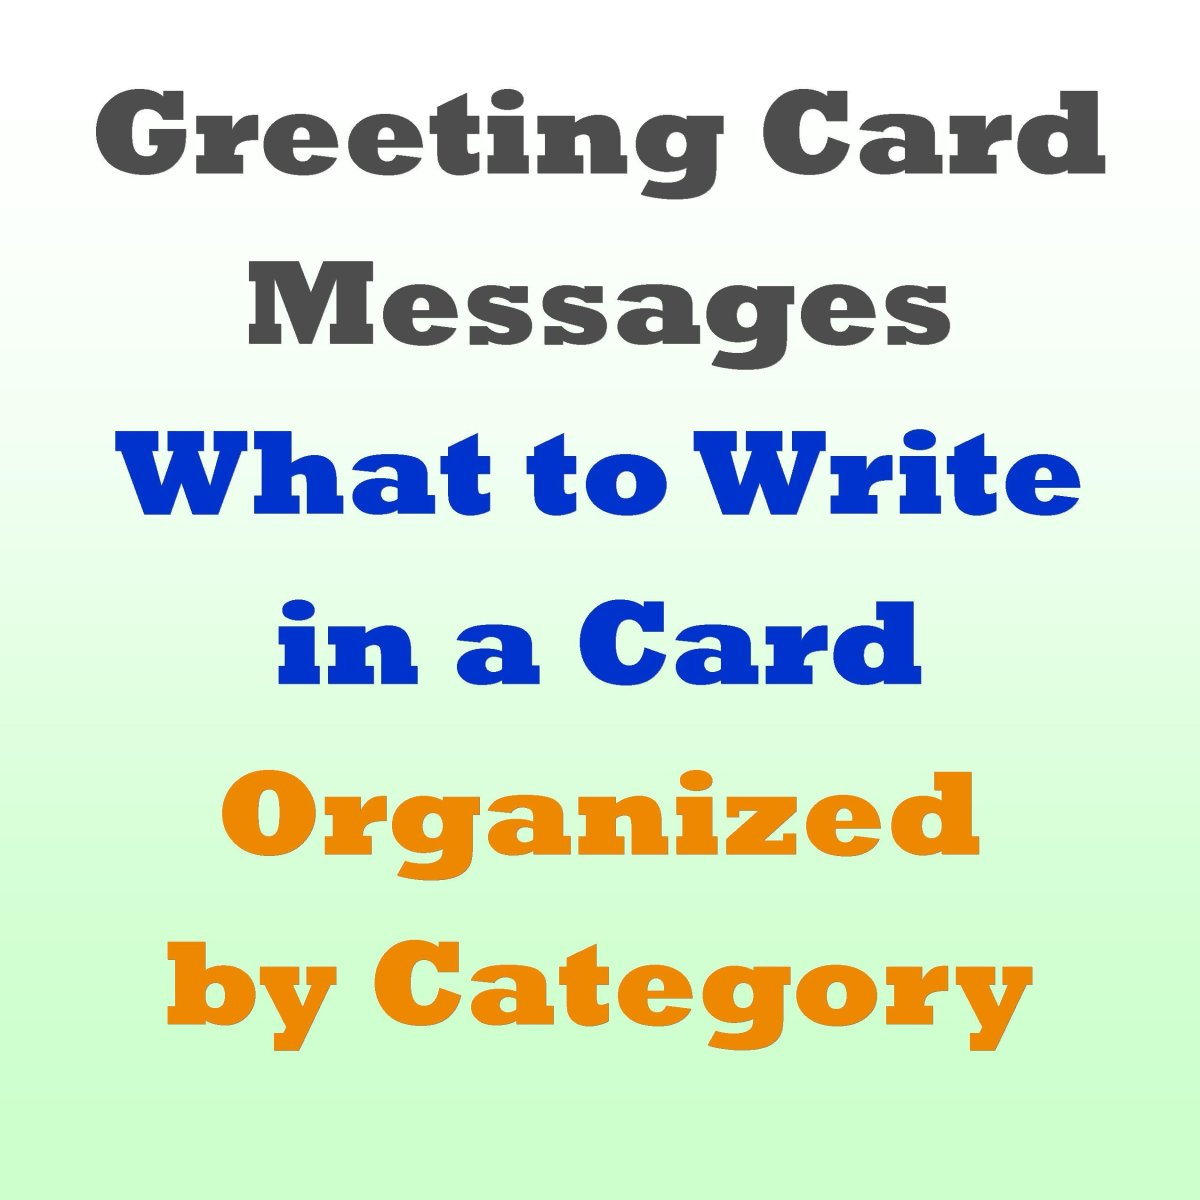 Greeting Card Messages Examples of What to Write HubPages - what to write